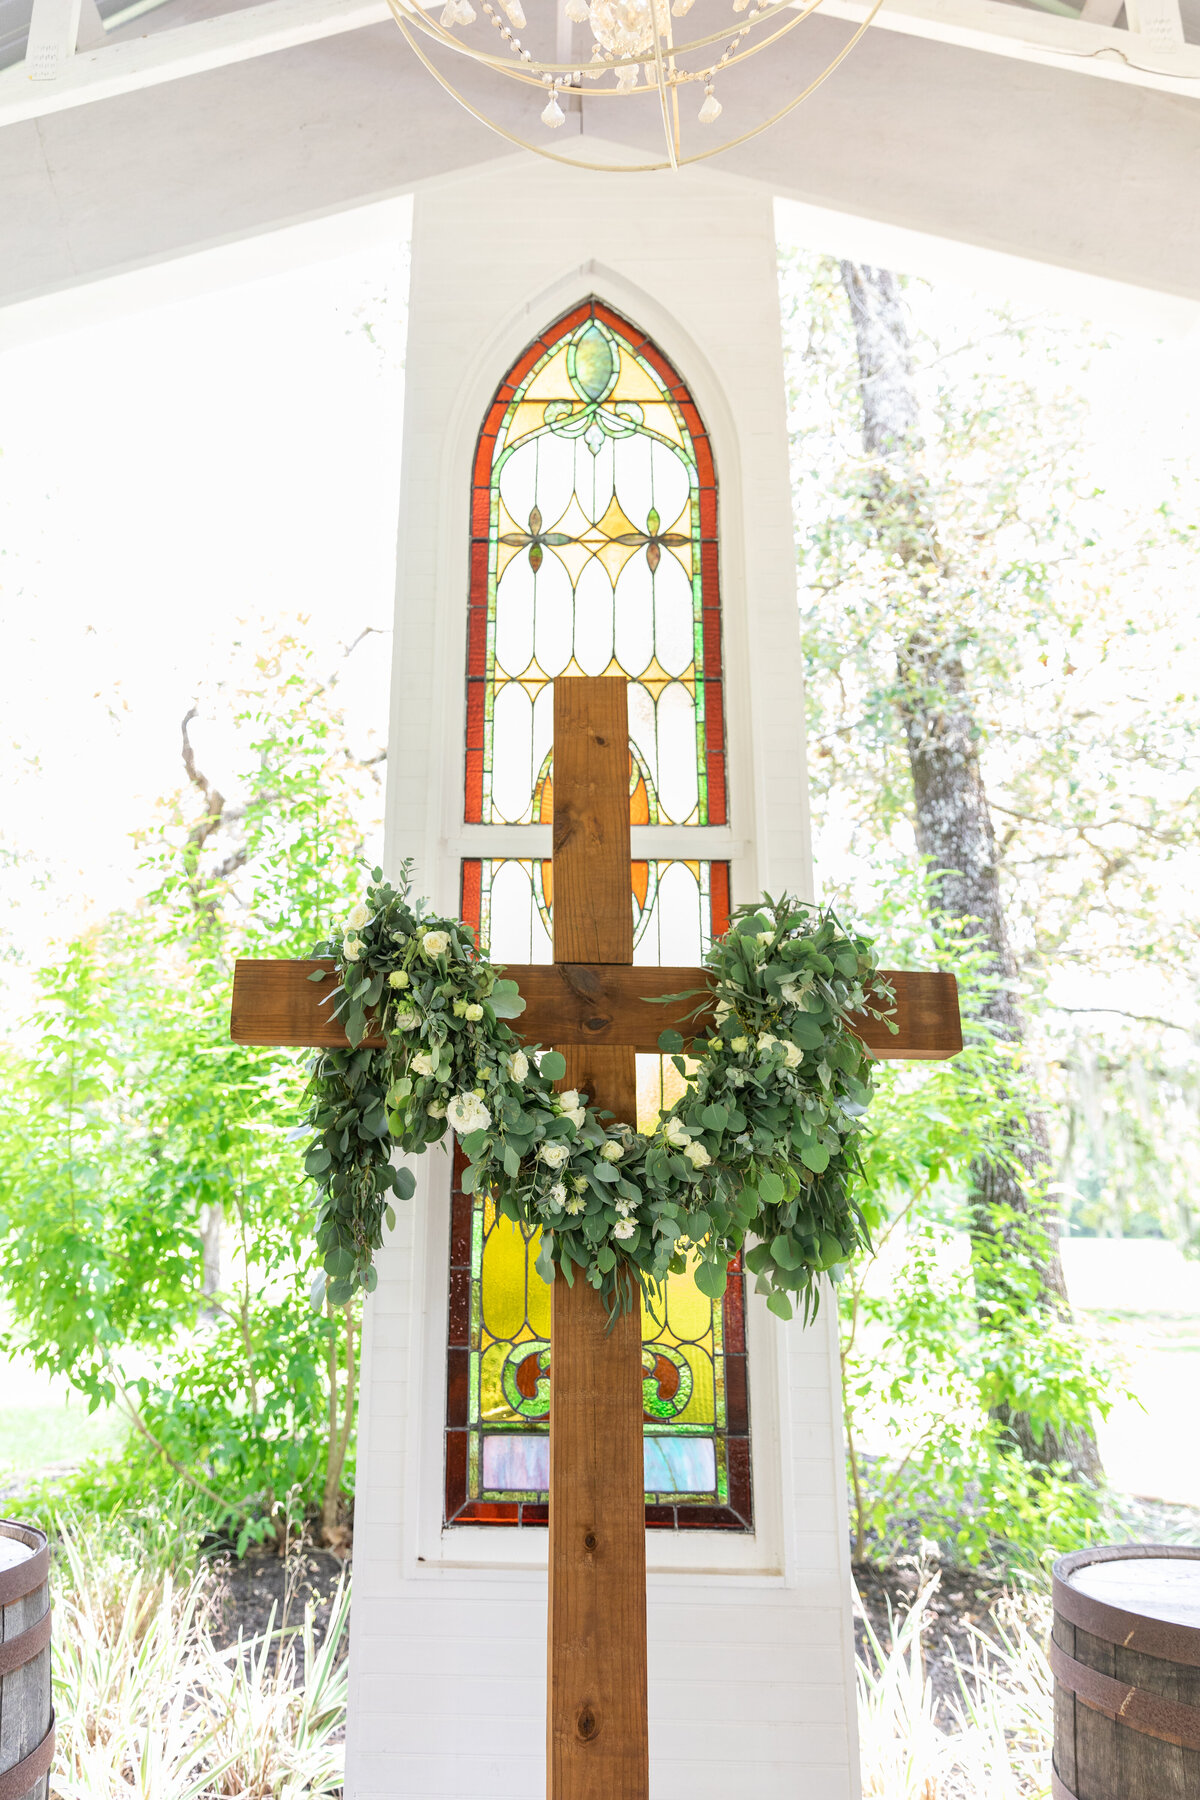 Decorated Cross in an Open Air White Chapel